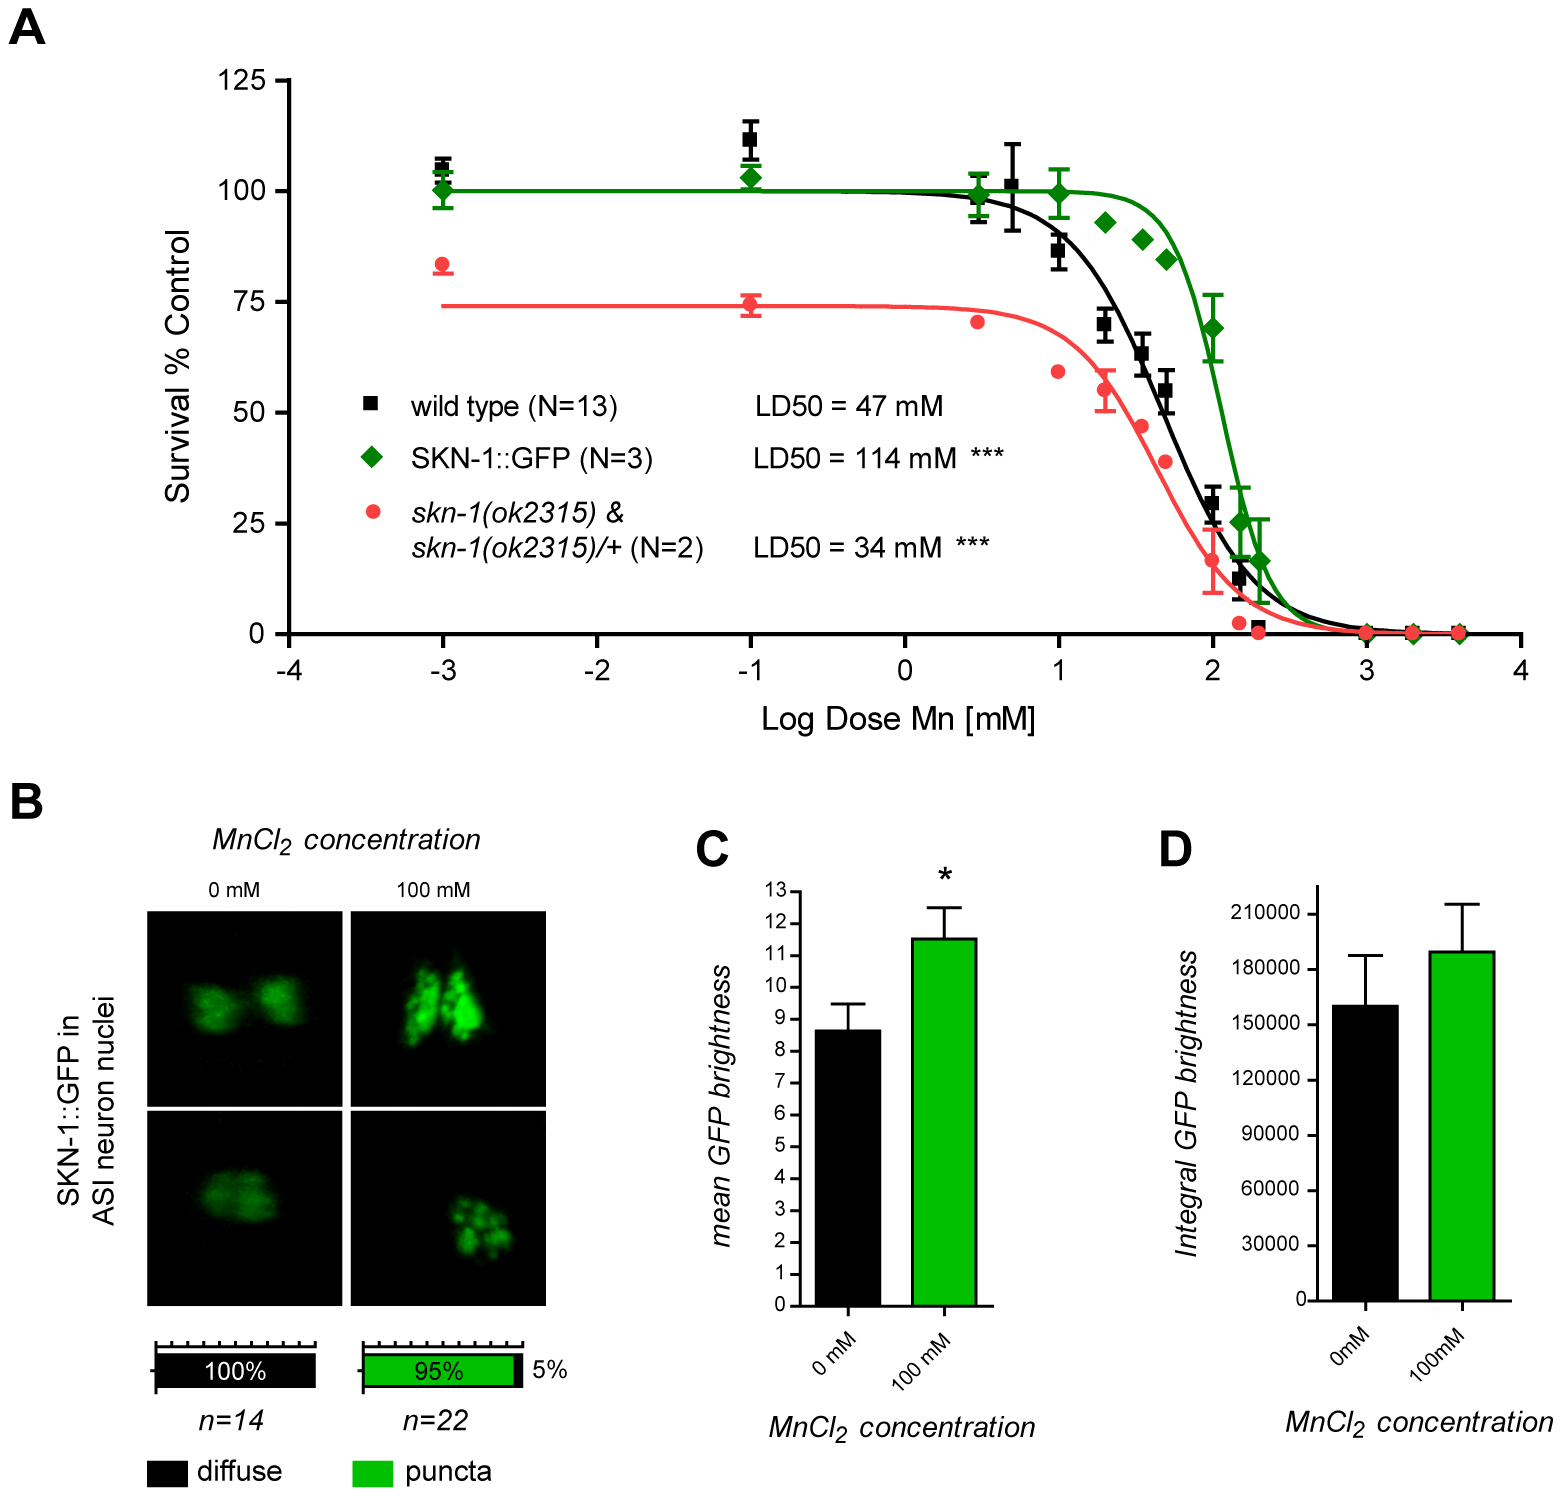 skn-1 mutants are hypersensitive while SKN-1::GFP overexpressing worms are hyper-resistant to Mn toxicity and respond to Mn exposure by relocalizing SKN-1::GFP to nuclear puncta in ASI neurons.